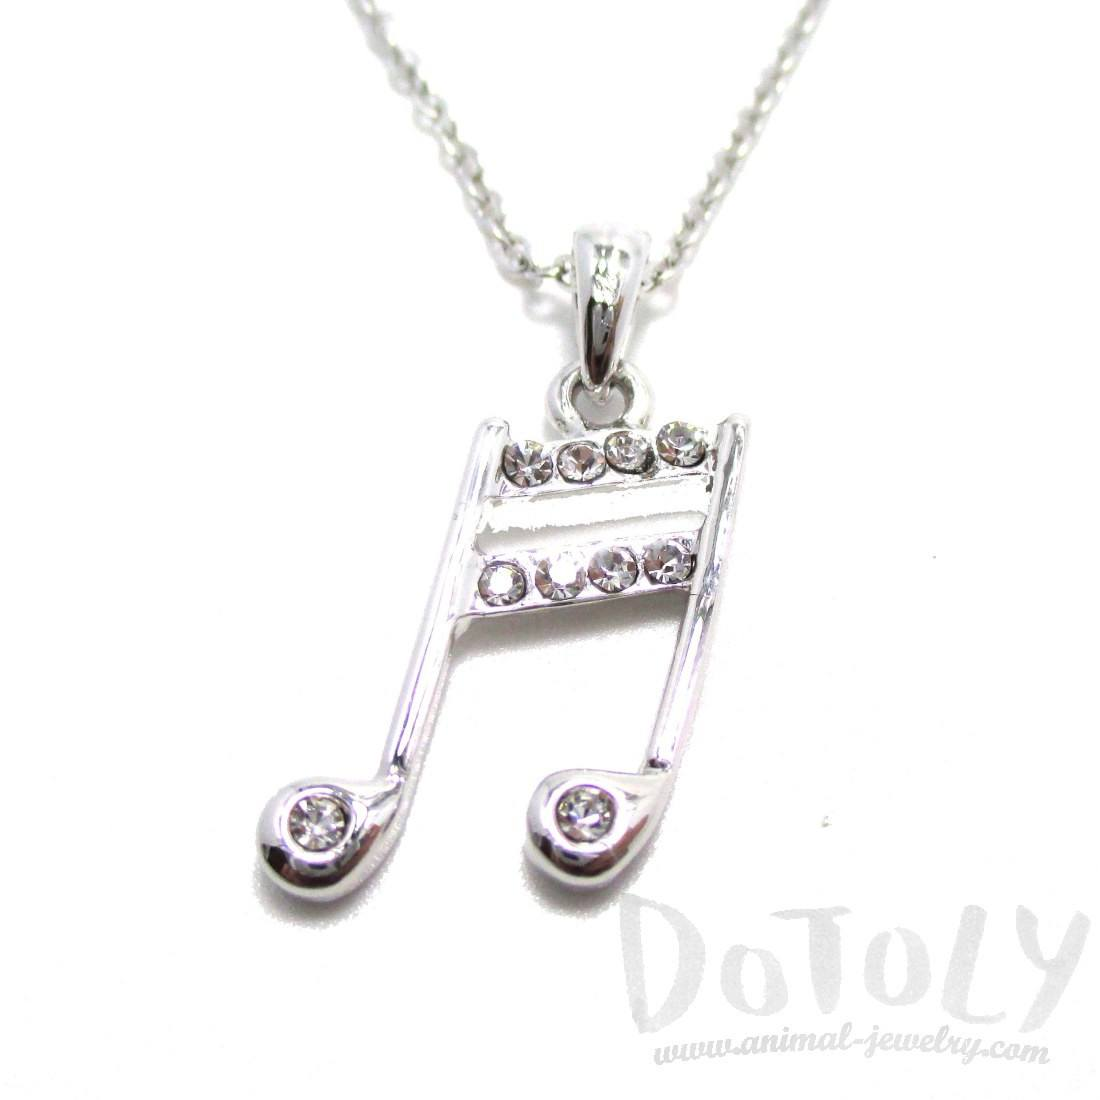 Beamed Quaver Note Shaped Pendant Necklace in Silver